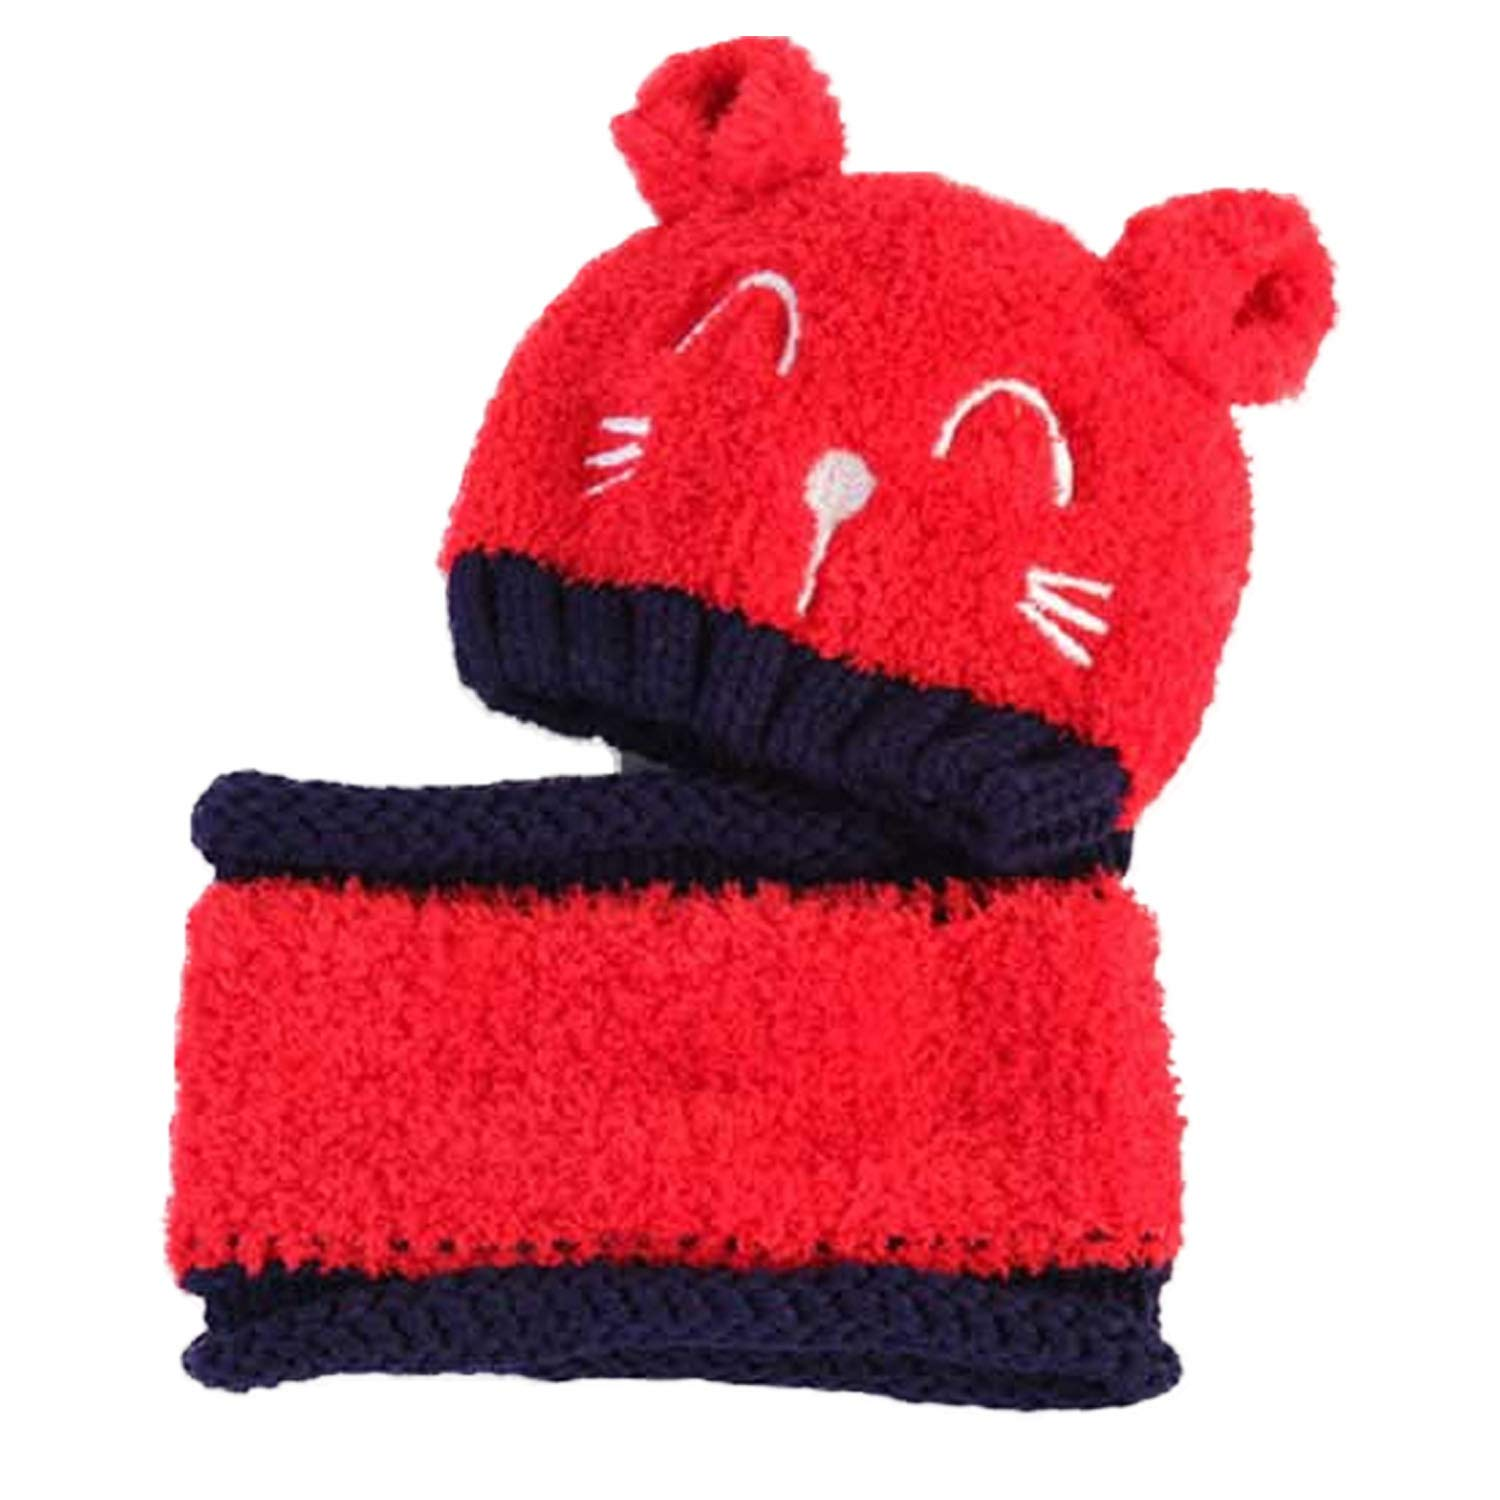 2pcs Baby Infant Cute Winter Warm Soft Cat Knit Beanie Hat Cap with Circle Scarf for 8-36 Month Toddler Girls Boys